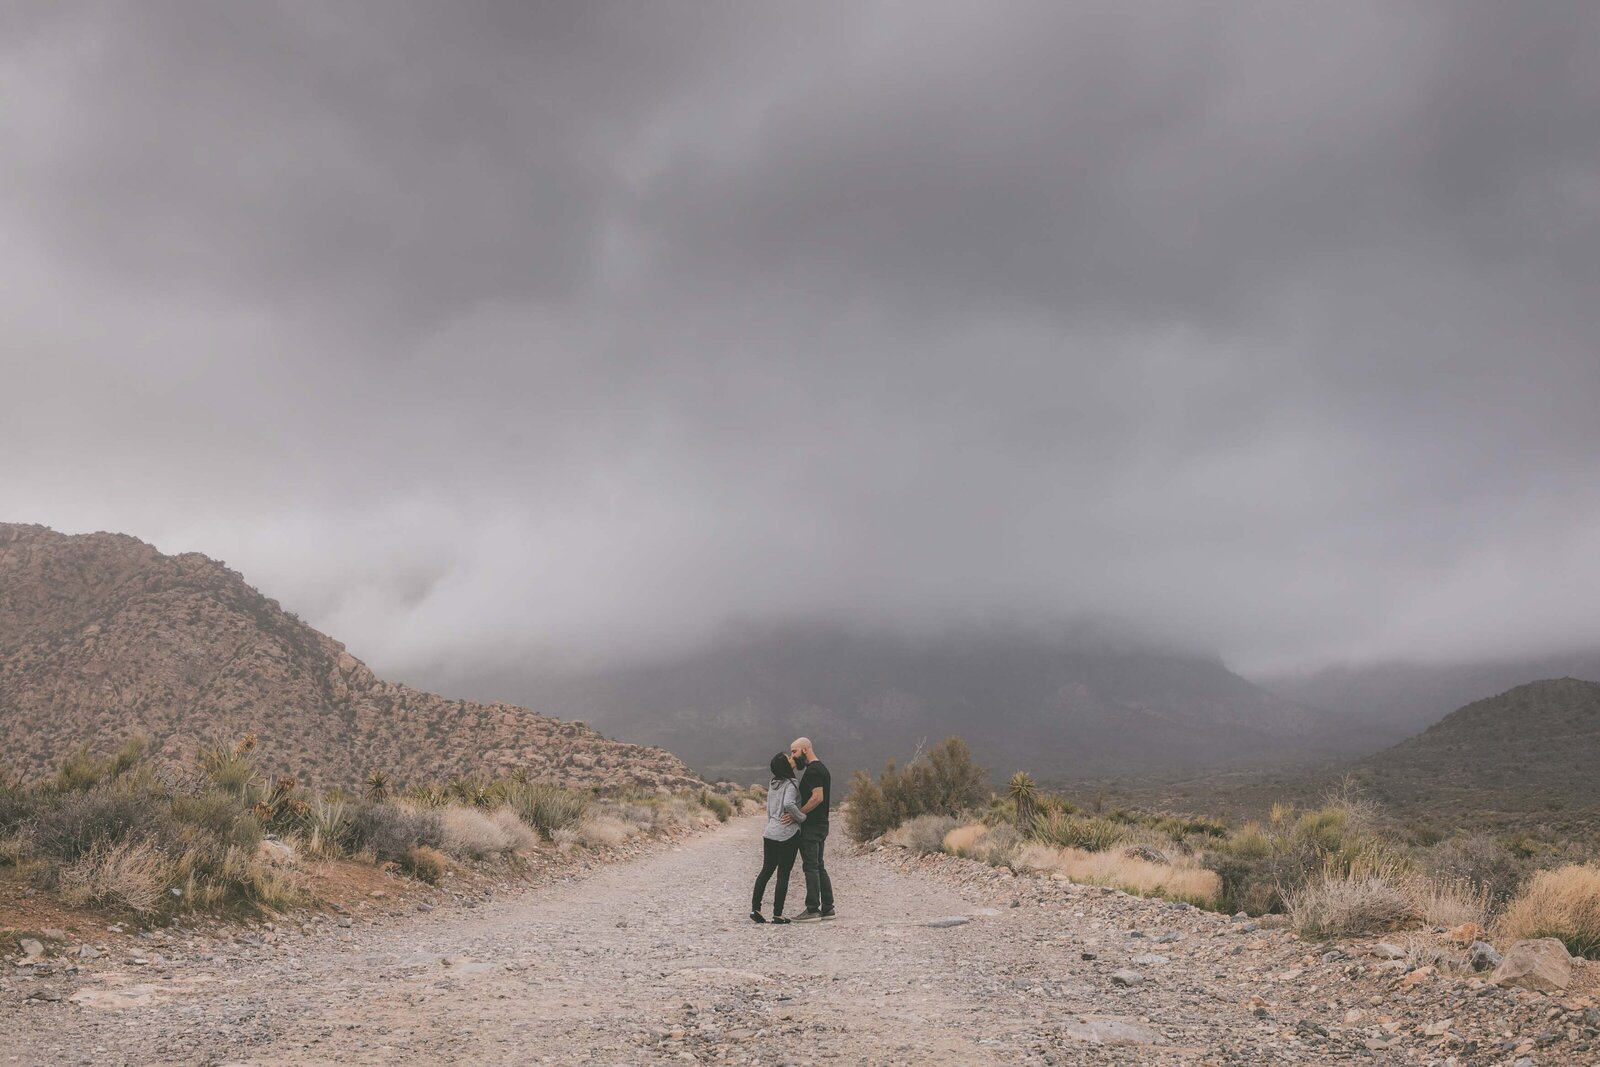 Couple pauses to kiss among desert road and stormy clouds.